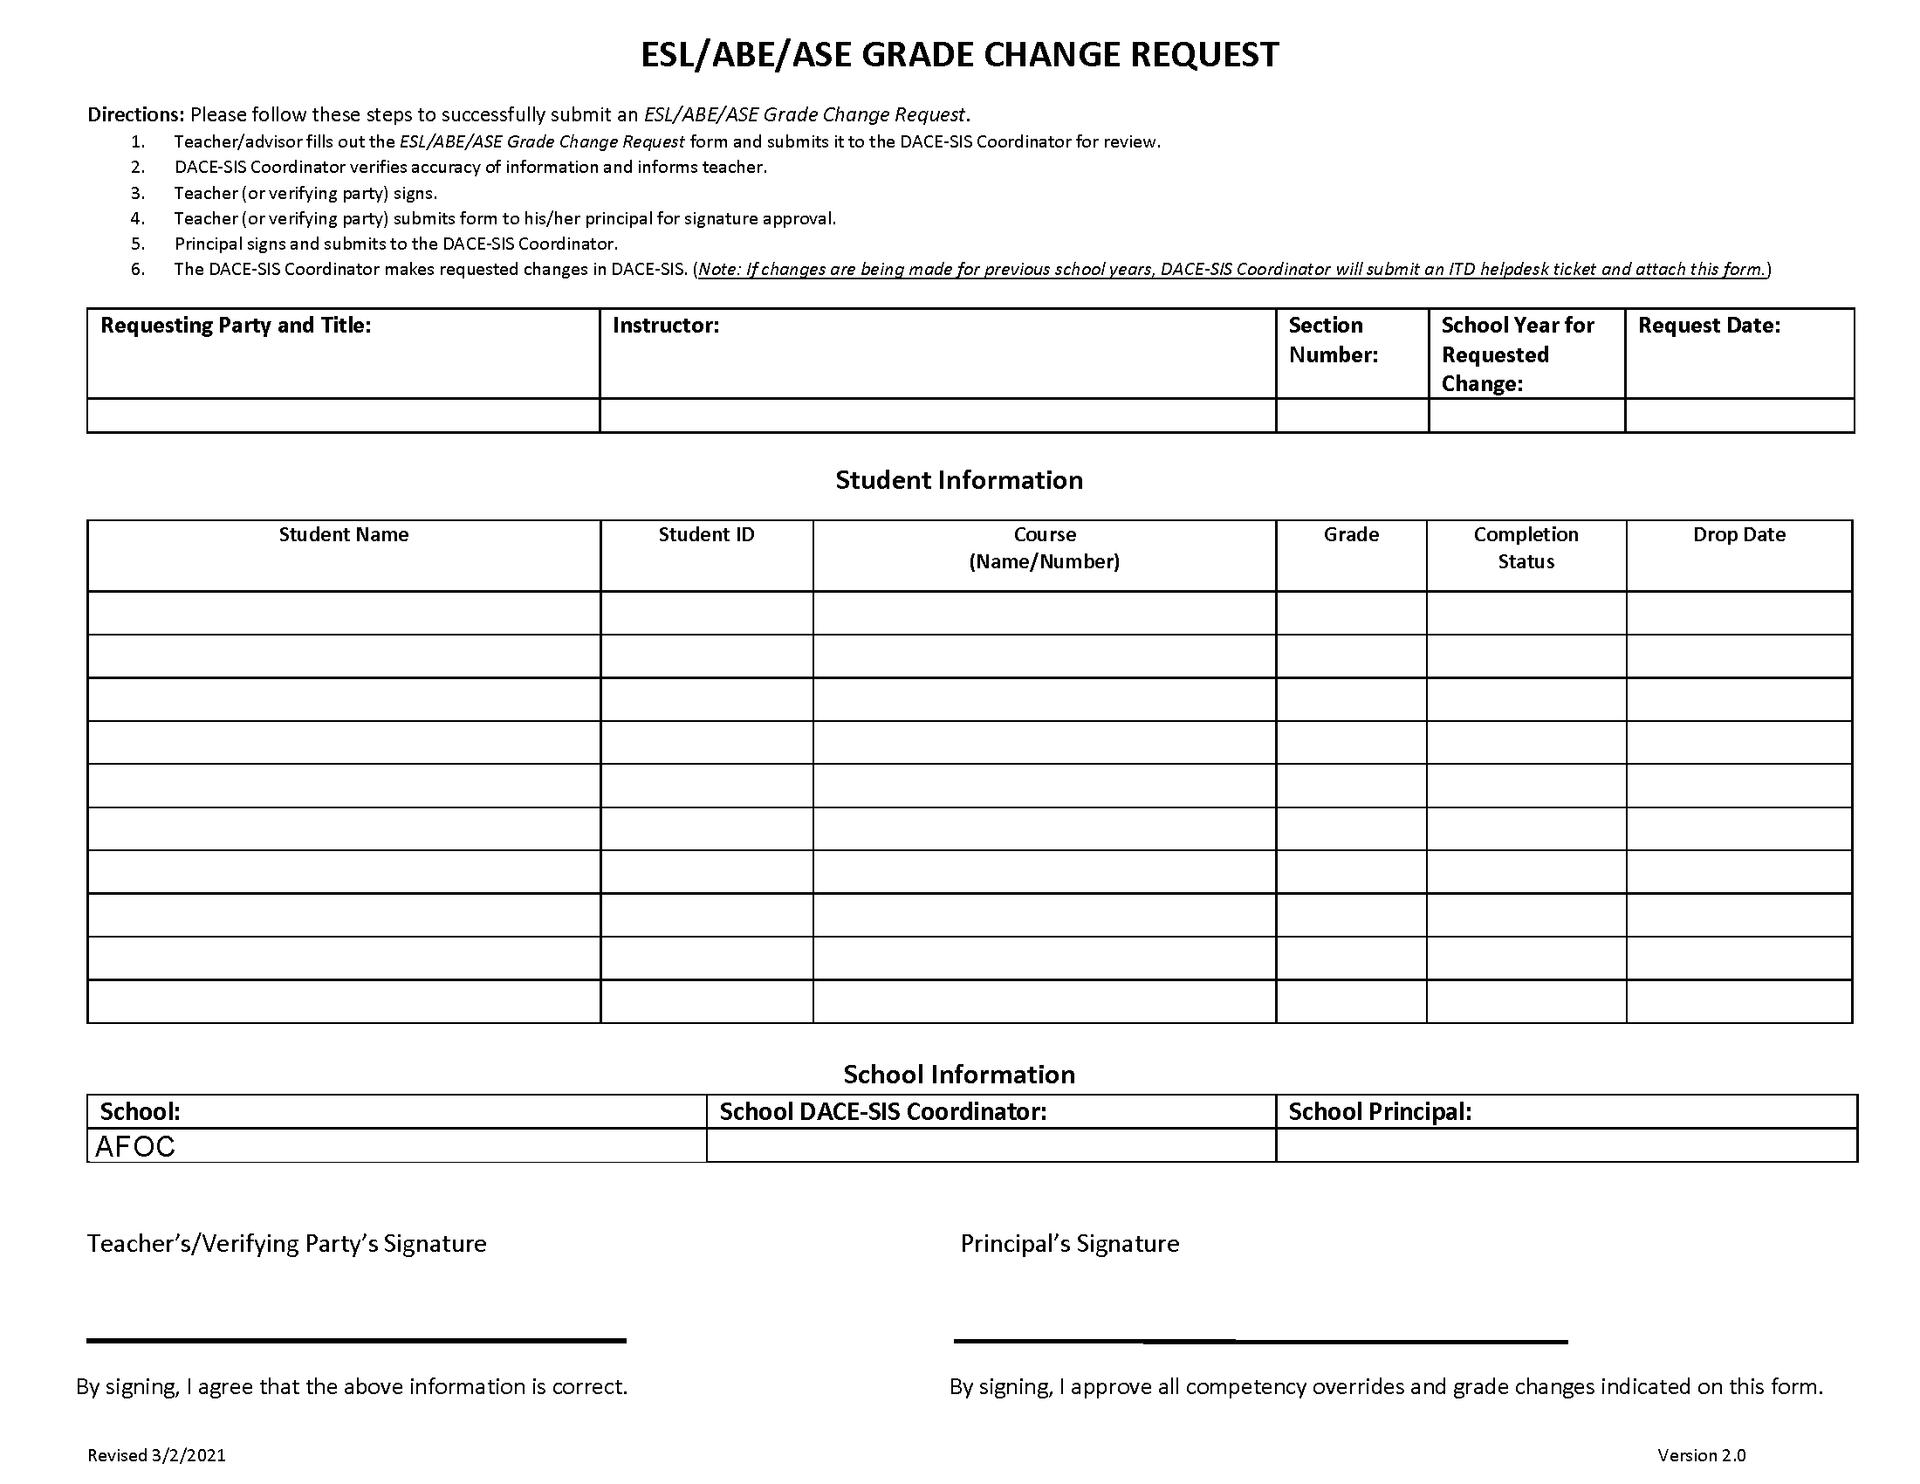 Download the ESL/ABE/ASE Grade Change Request Form thumbnail